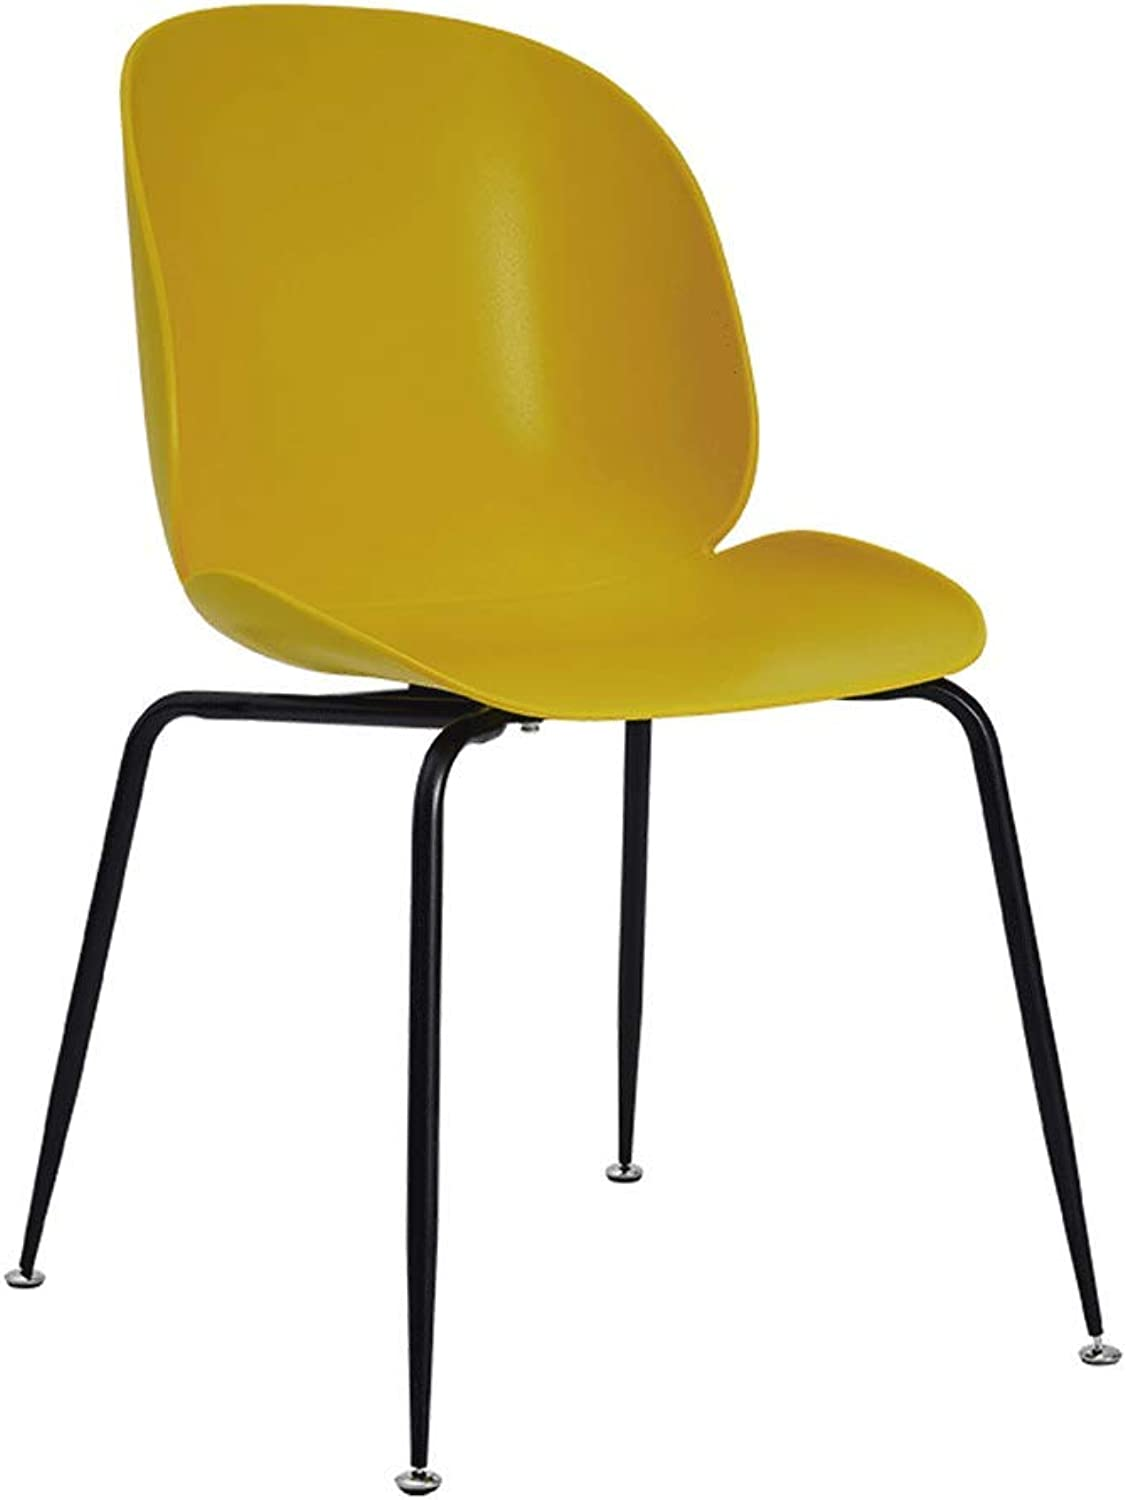 SLH Modern Minimalist Dining Chair Nordic Living Room Stool Home Backrest Chair (color   Yellow)